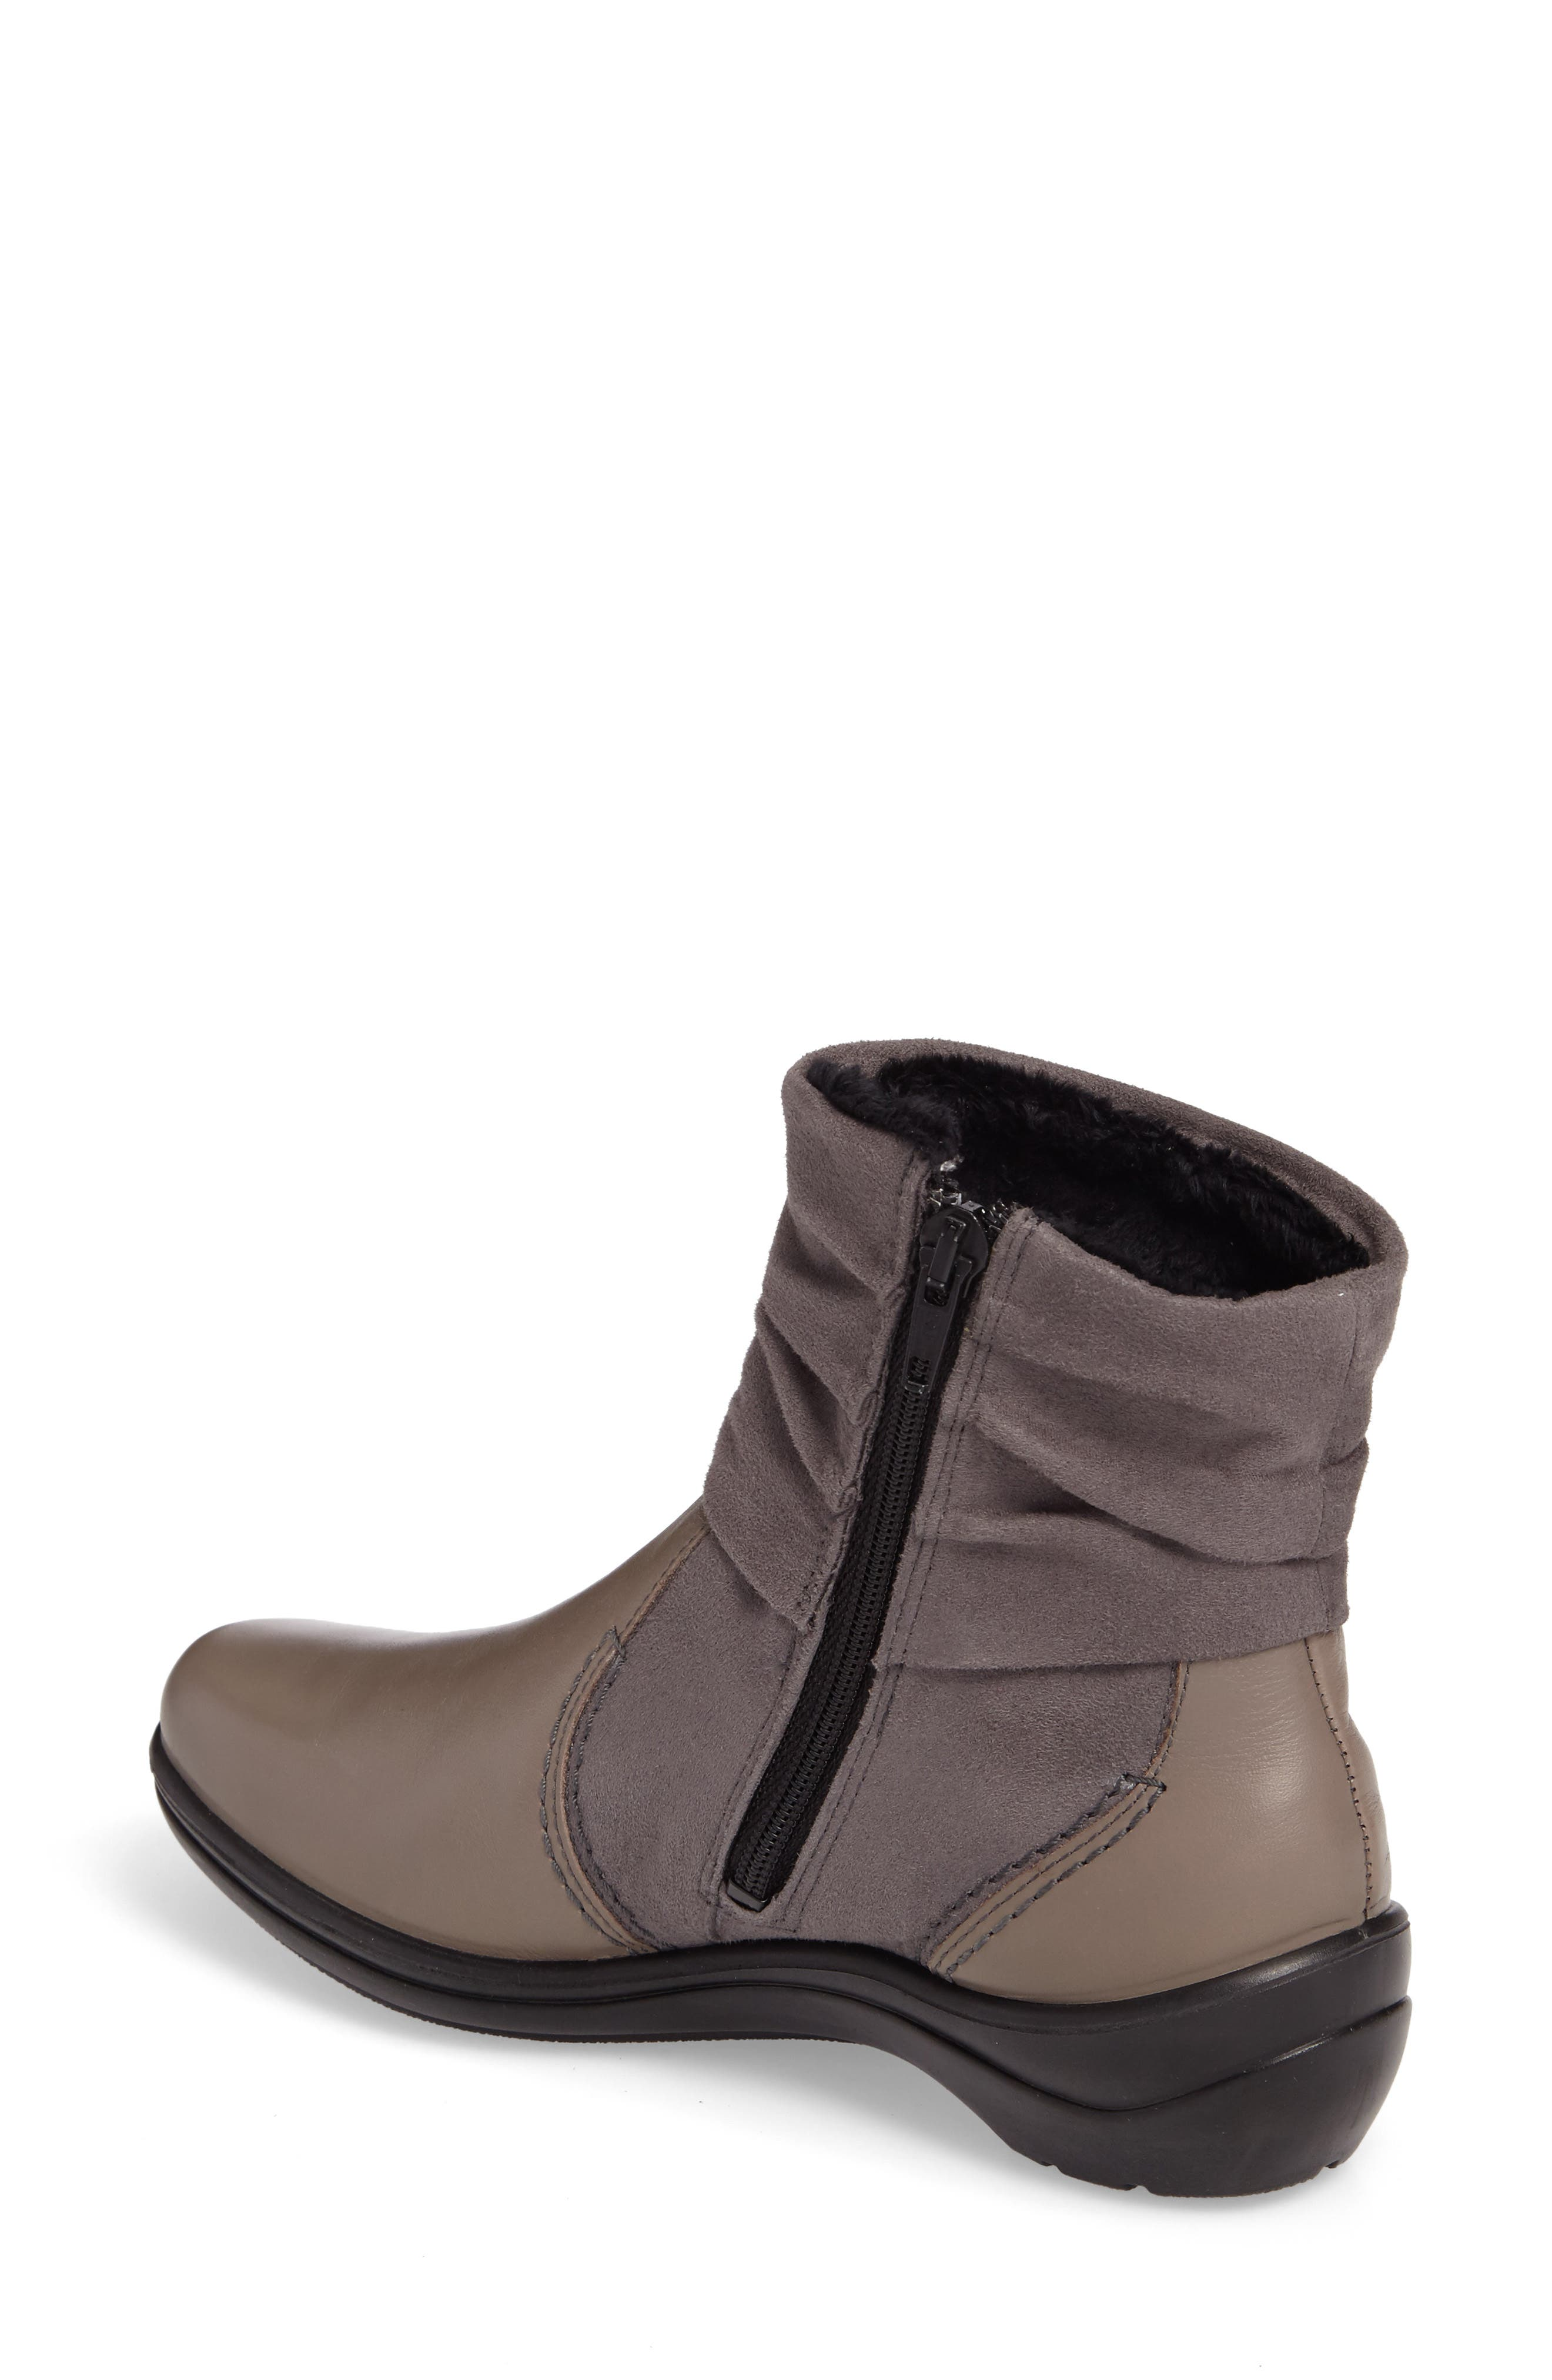 'Cassie 12' Boot,                             Alternate thumbnail 2, color,                             Grey Leather